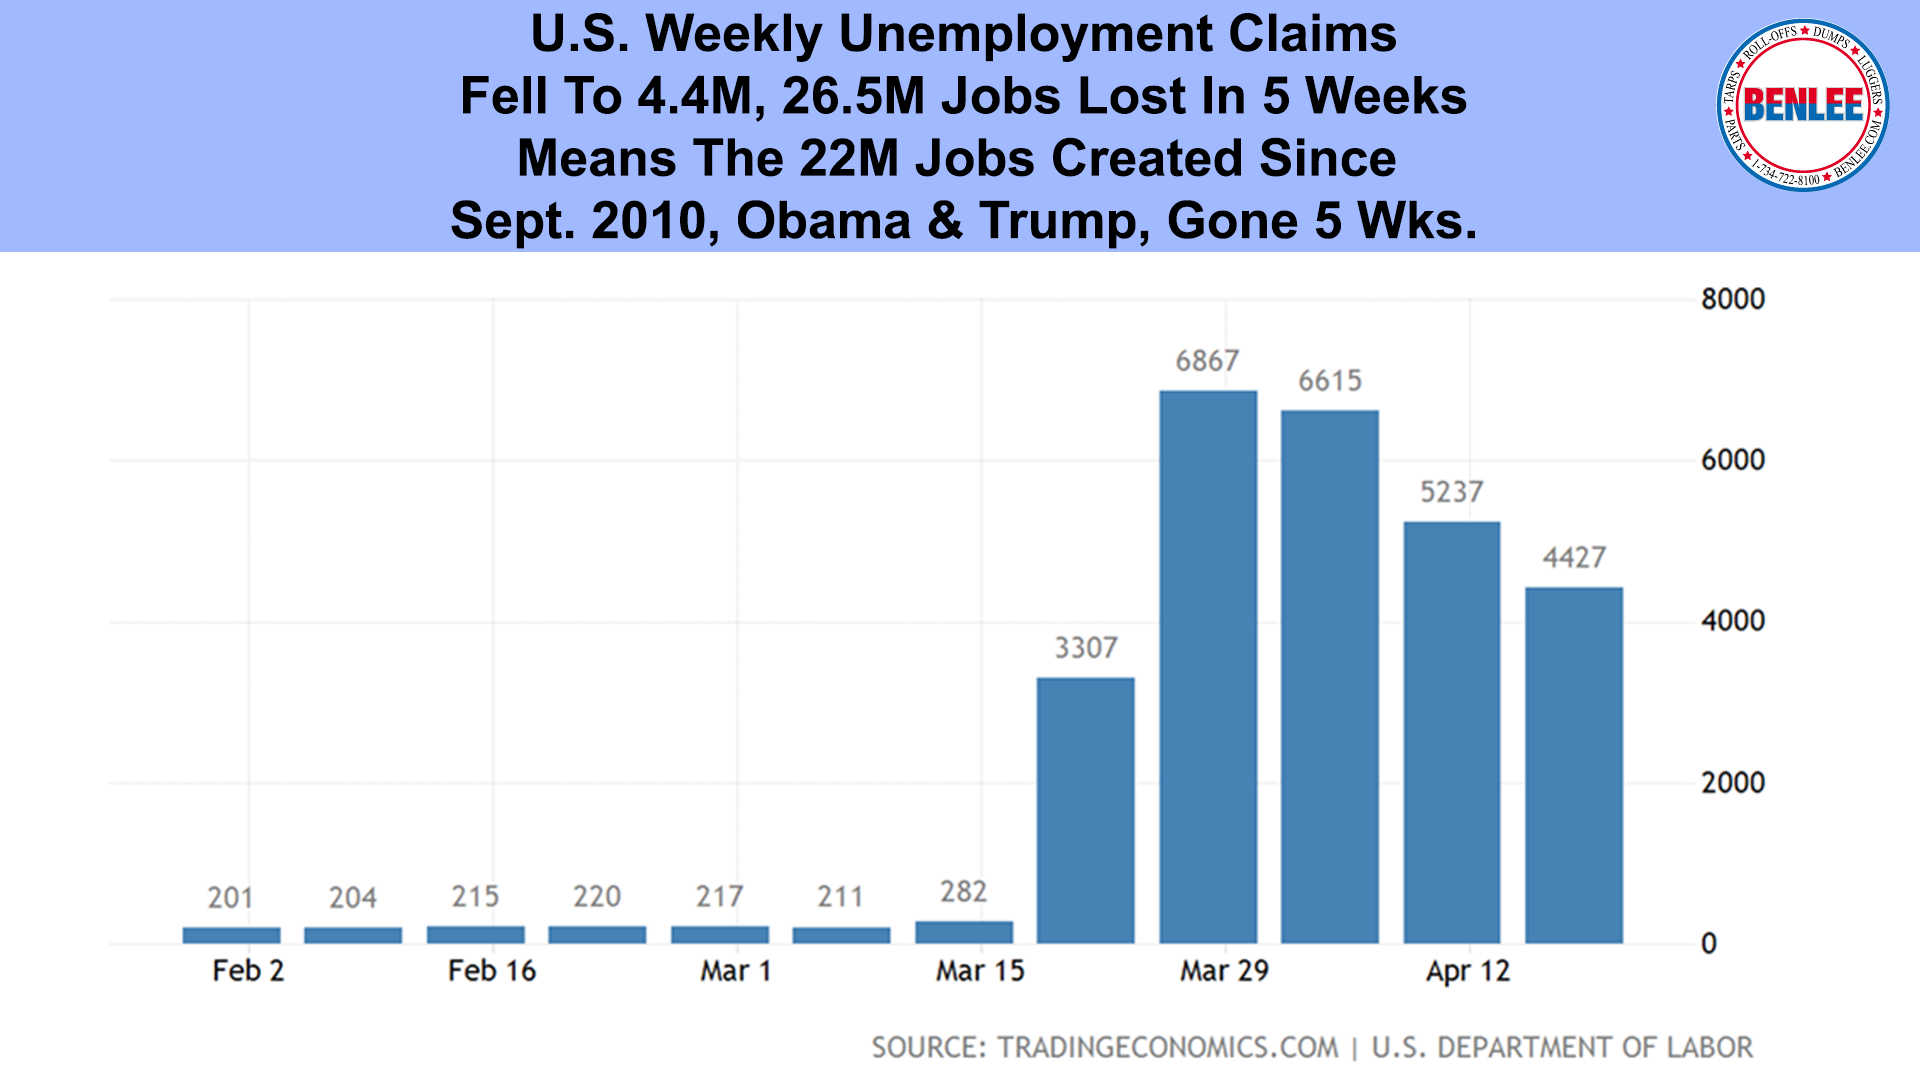 U.S. Weekly Unemployment Claims